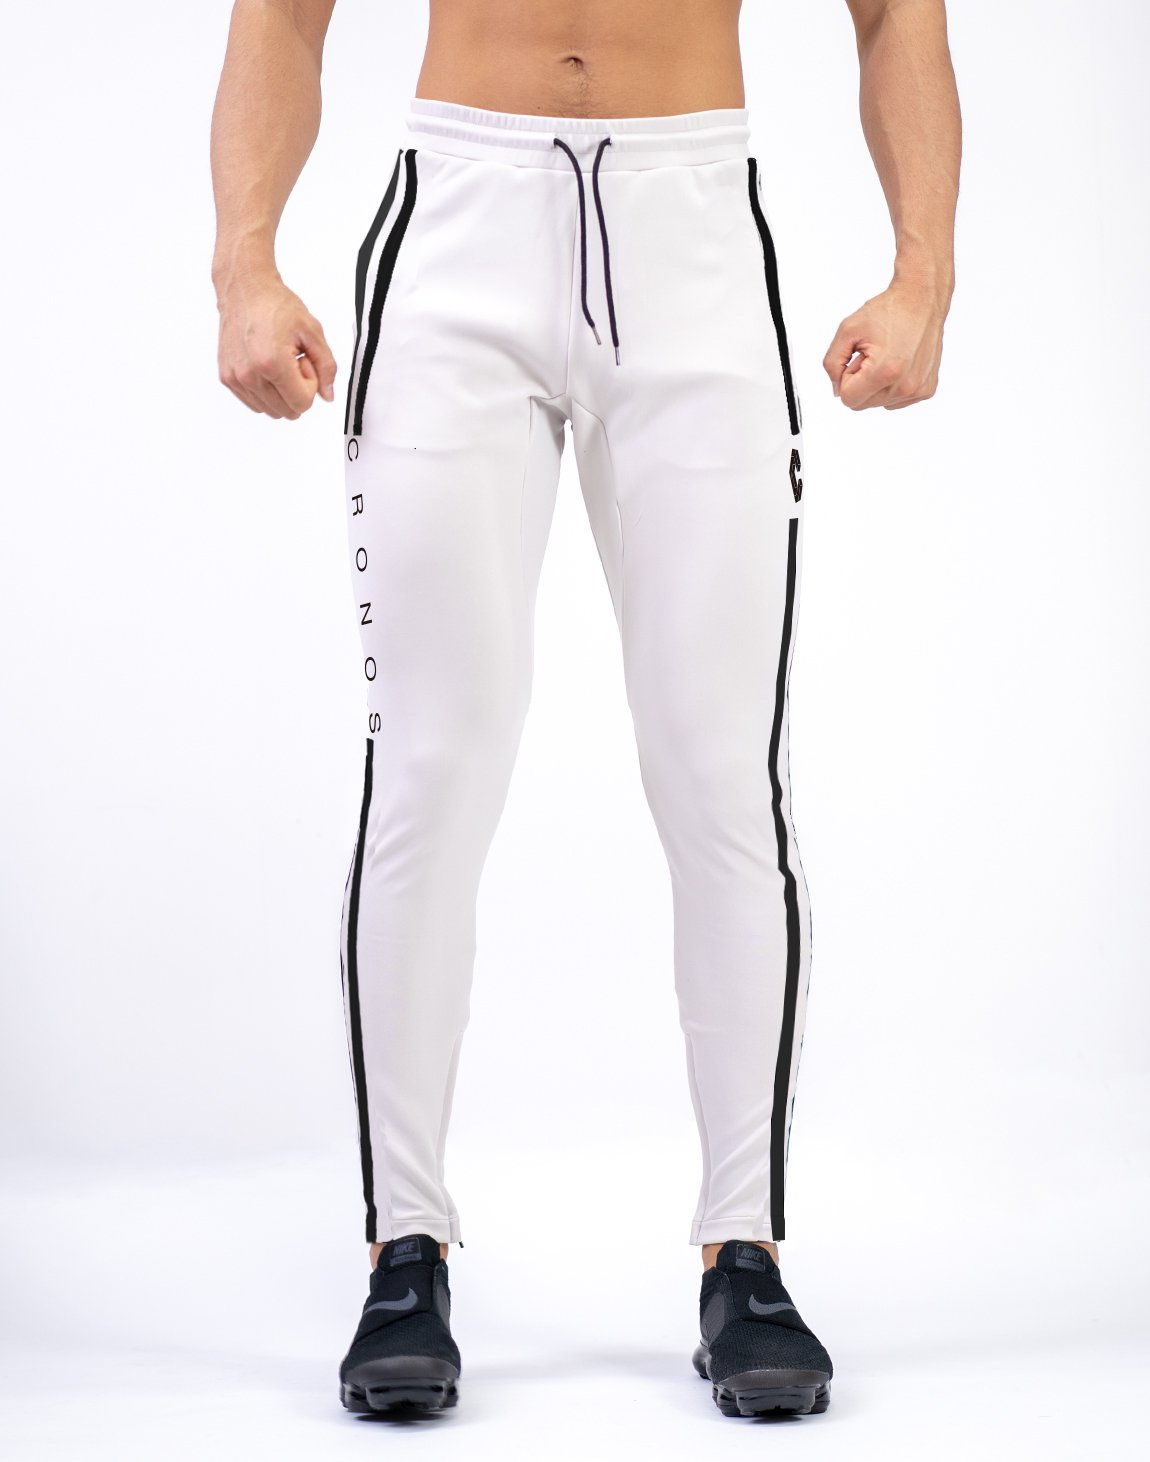 <img class='new_mark_img1' src='https://img.shop-pro.jp/img/new/icons1.gif' style='border:none;display:inline;margin:0px;padding:0px;width:auto;' />CRONOS NEW MODE 2STRIPE PANTS WHITE